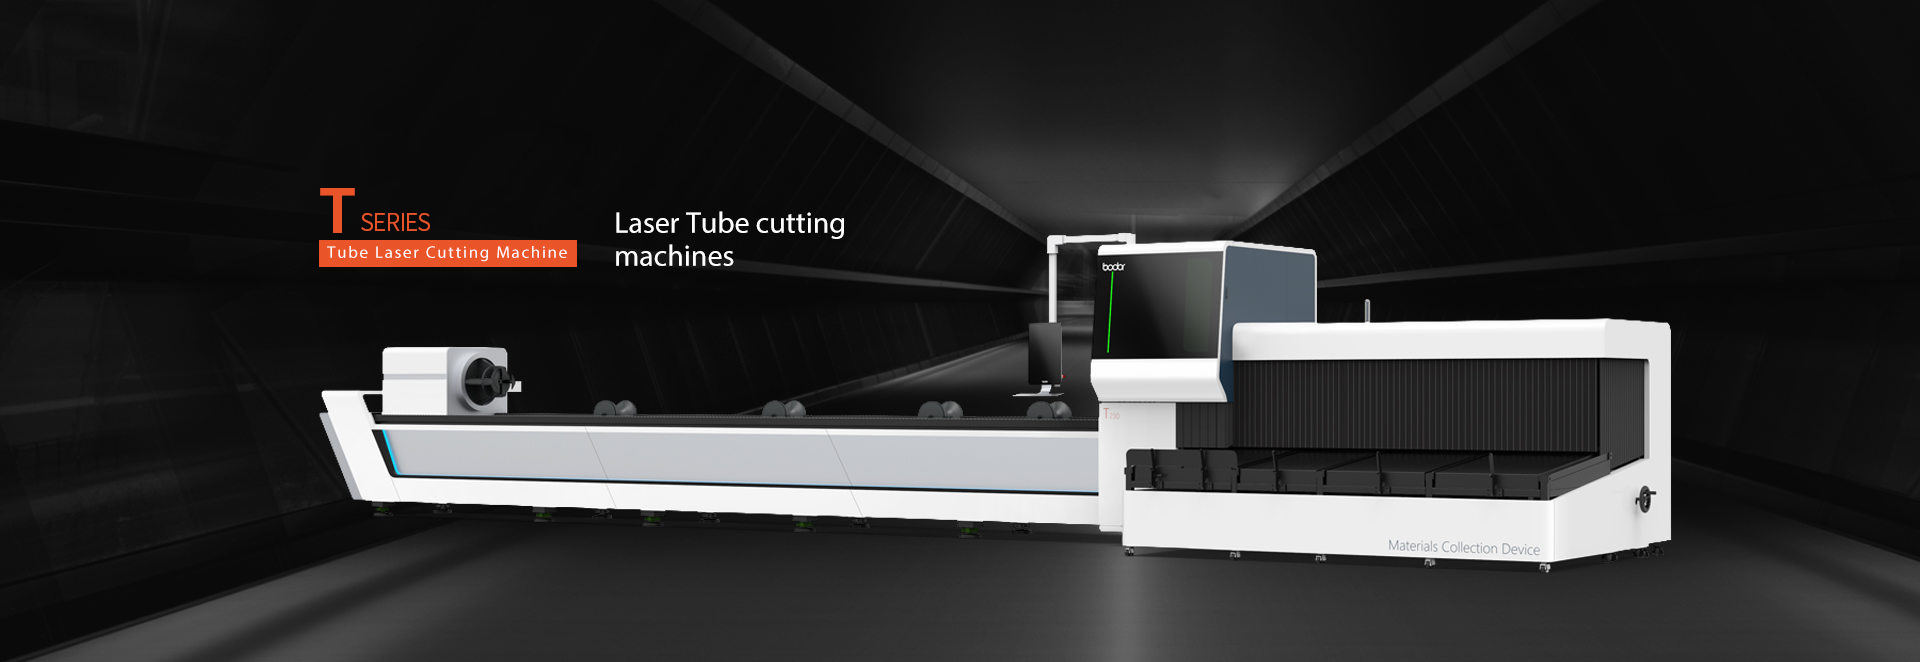 Tube Laser Cutting Machine T